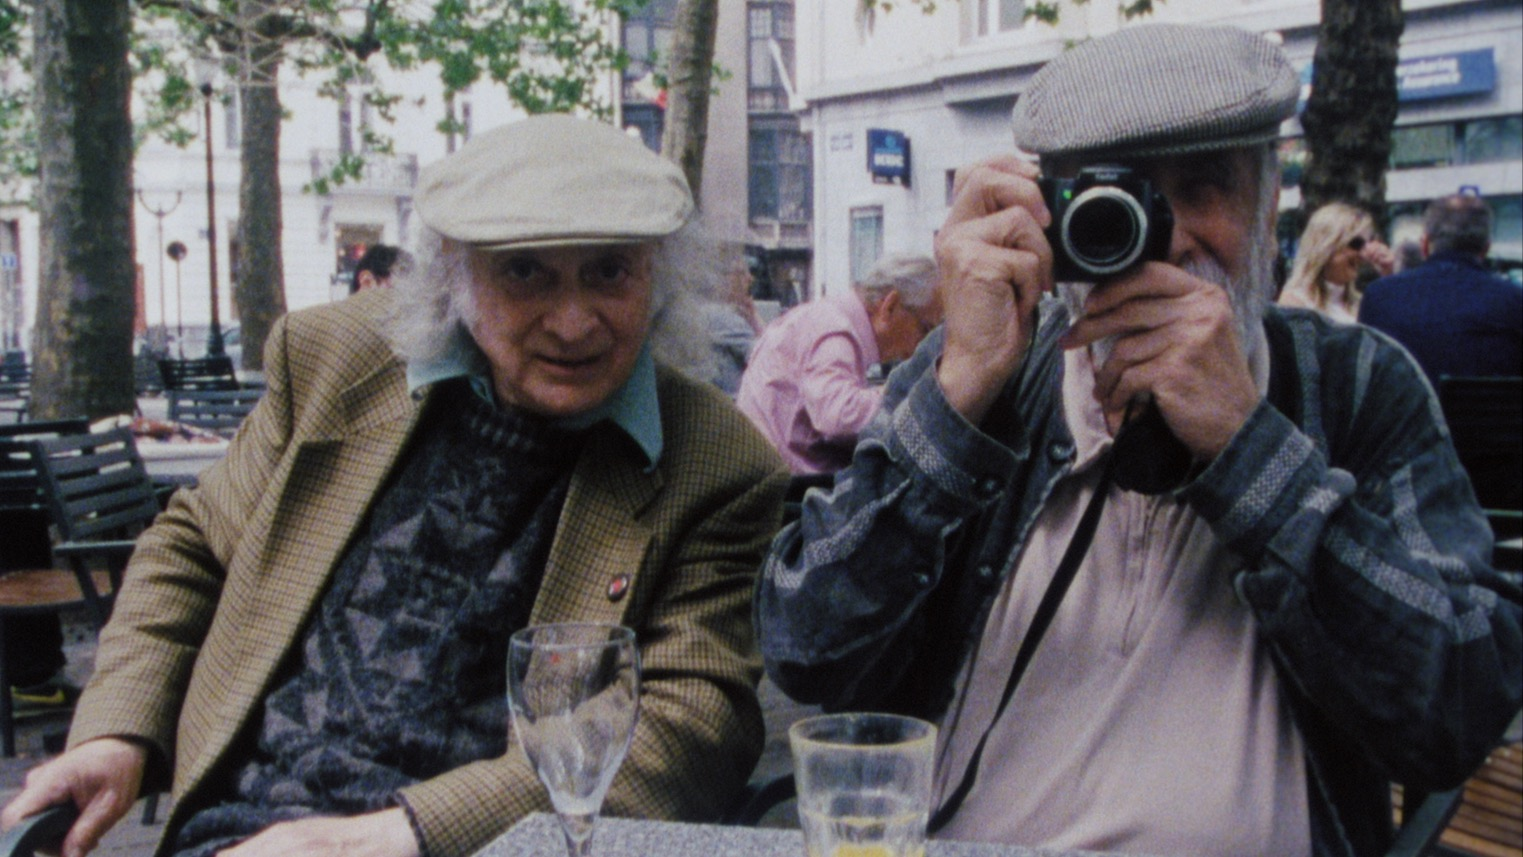 My Conversations on Film (Boris Lehman, 1995-2012)